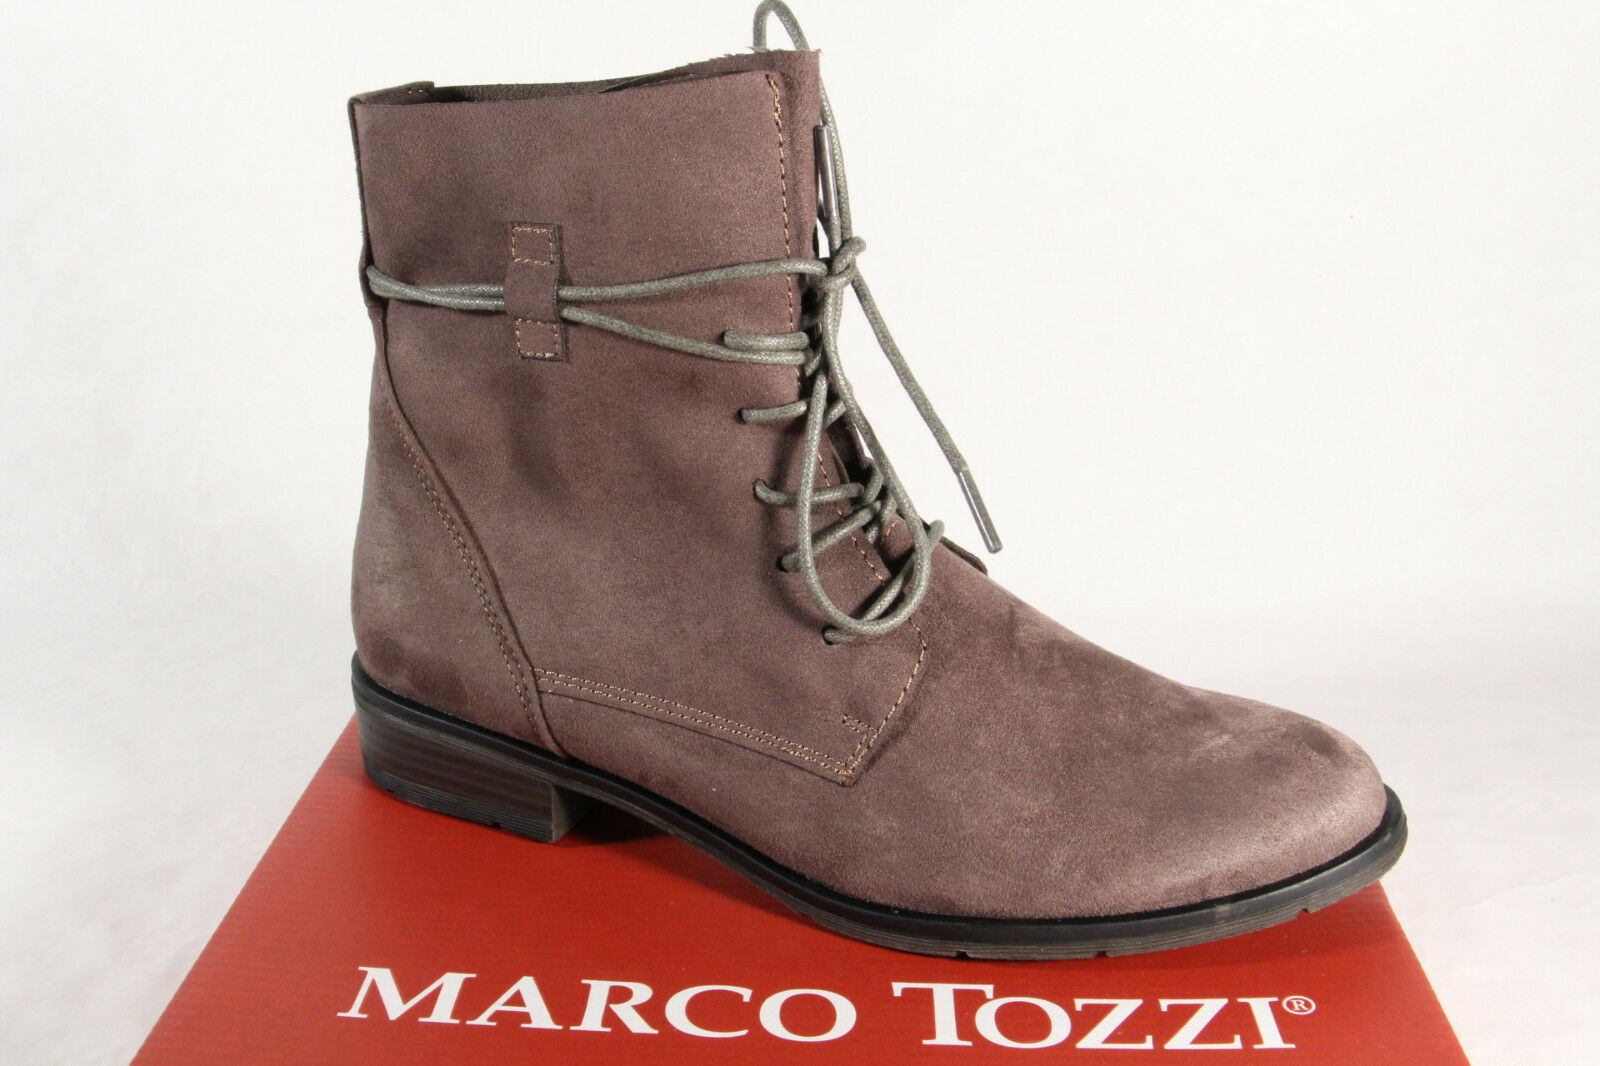 MARCO TOZZI Women's Boots Ankle Boots Lace Up Boots, Boots Grey 25112 New